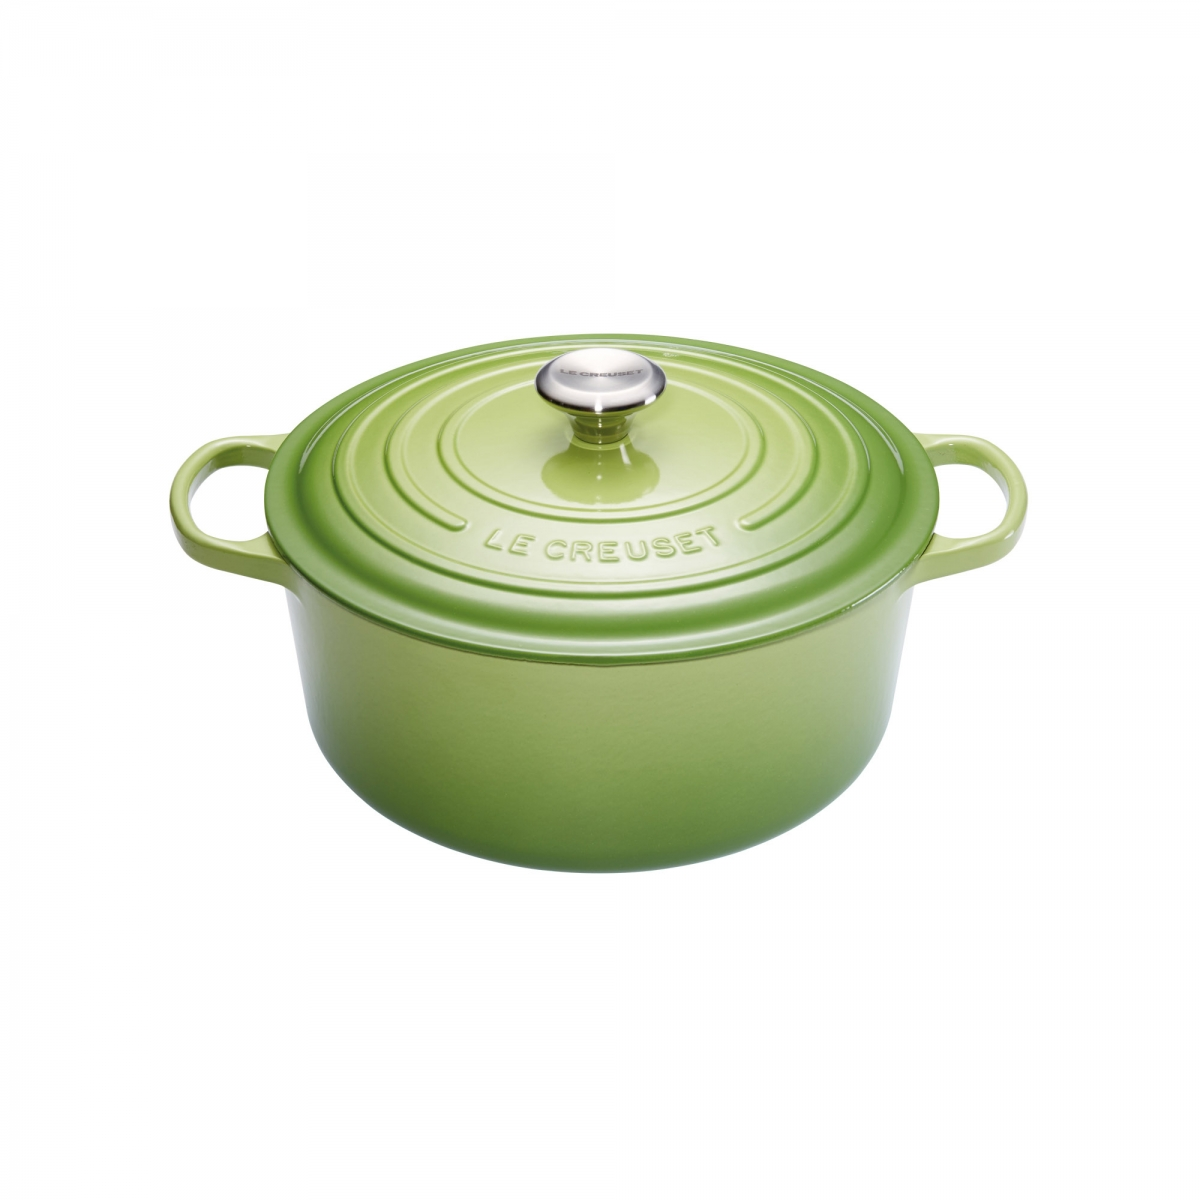 le creuset signature cocotte faitout en fonte maille 24cm 42l vert. Black Bedroom Furniture Sets. Home Design Ideas